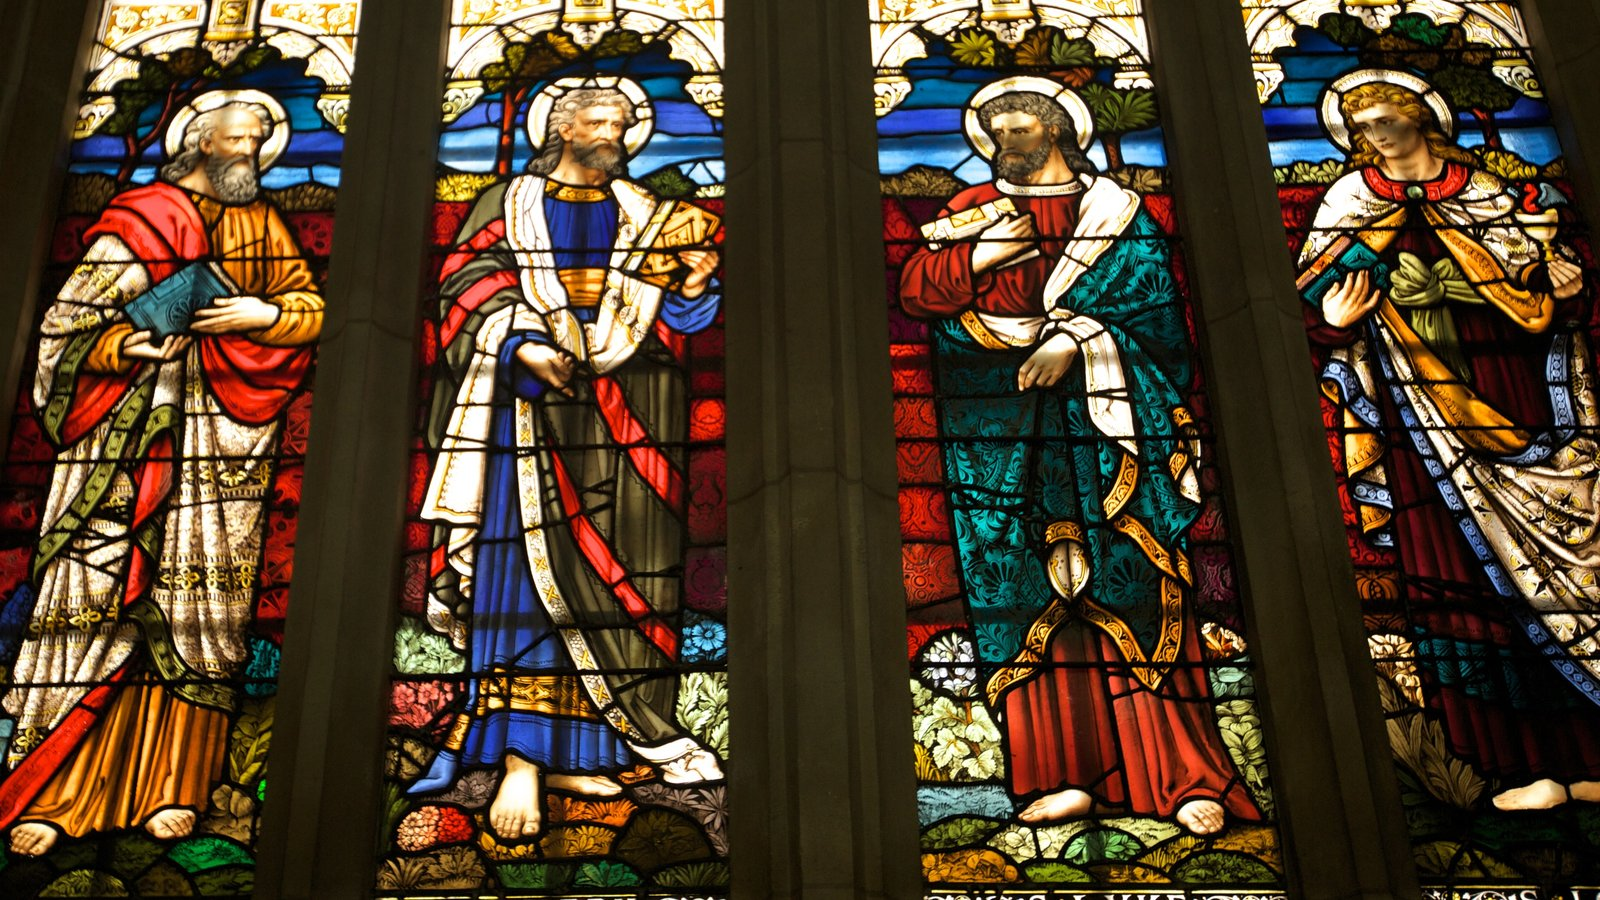 St. Paul\'s Cathedral which includes interior views, religious aspects and art